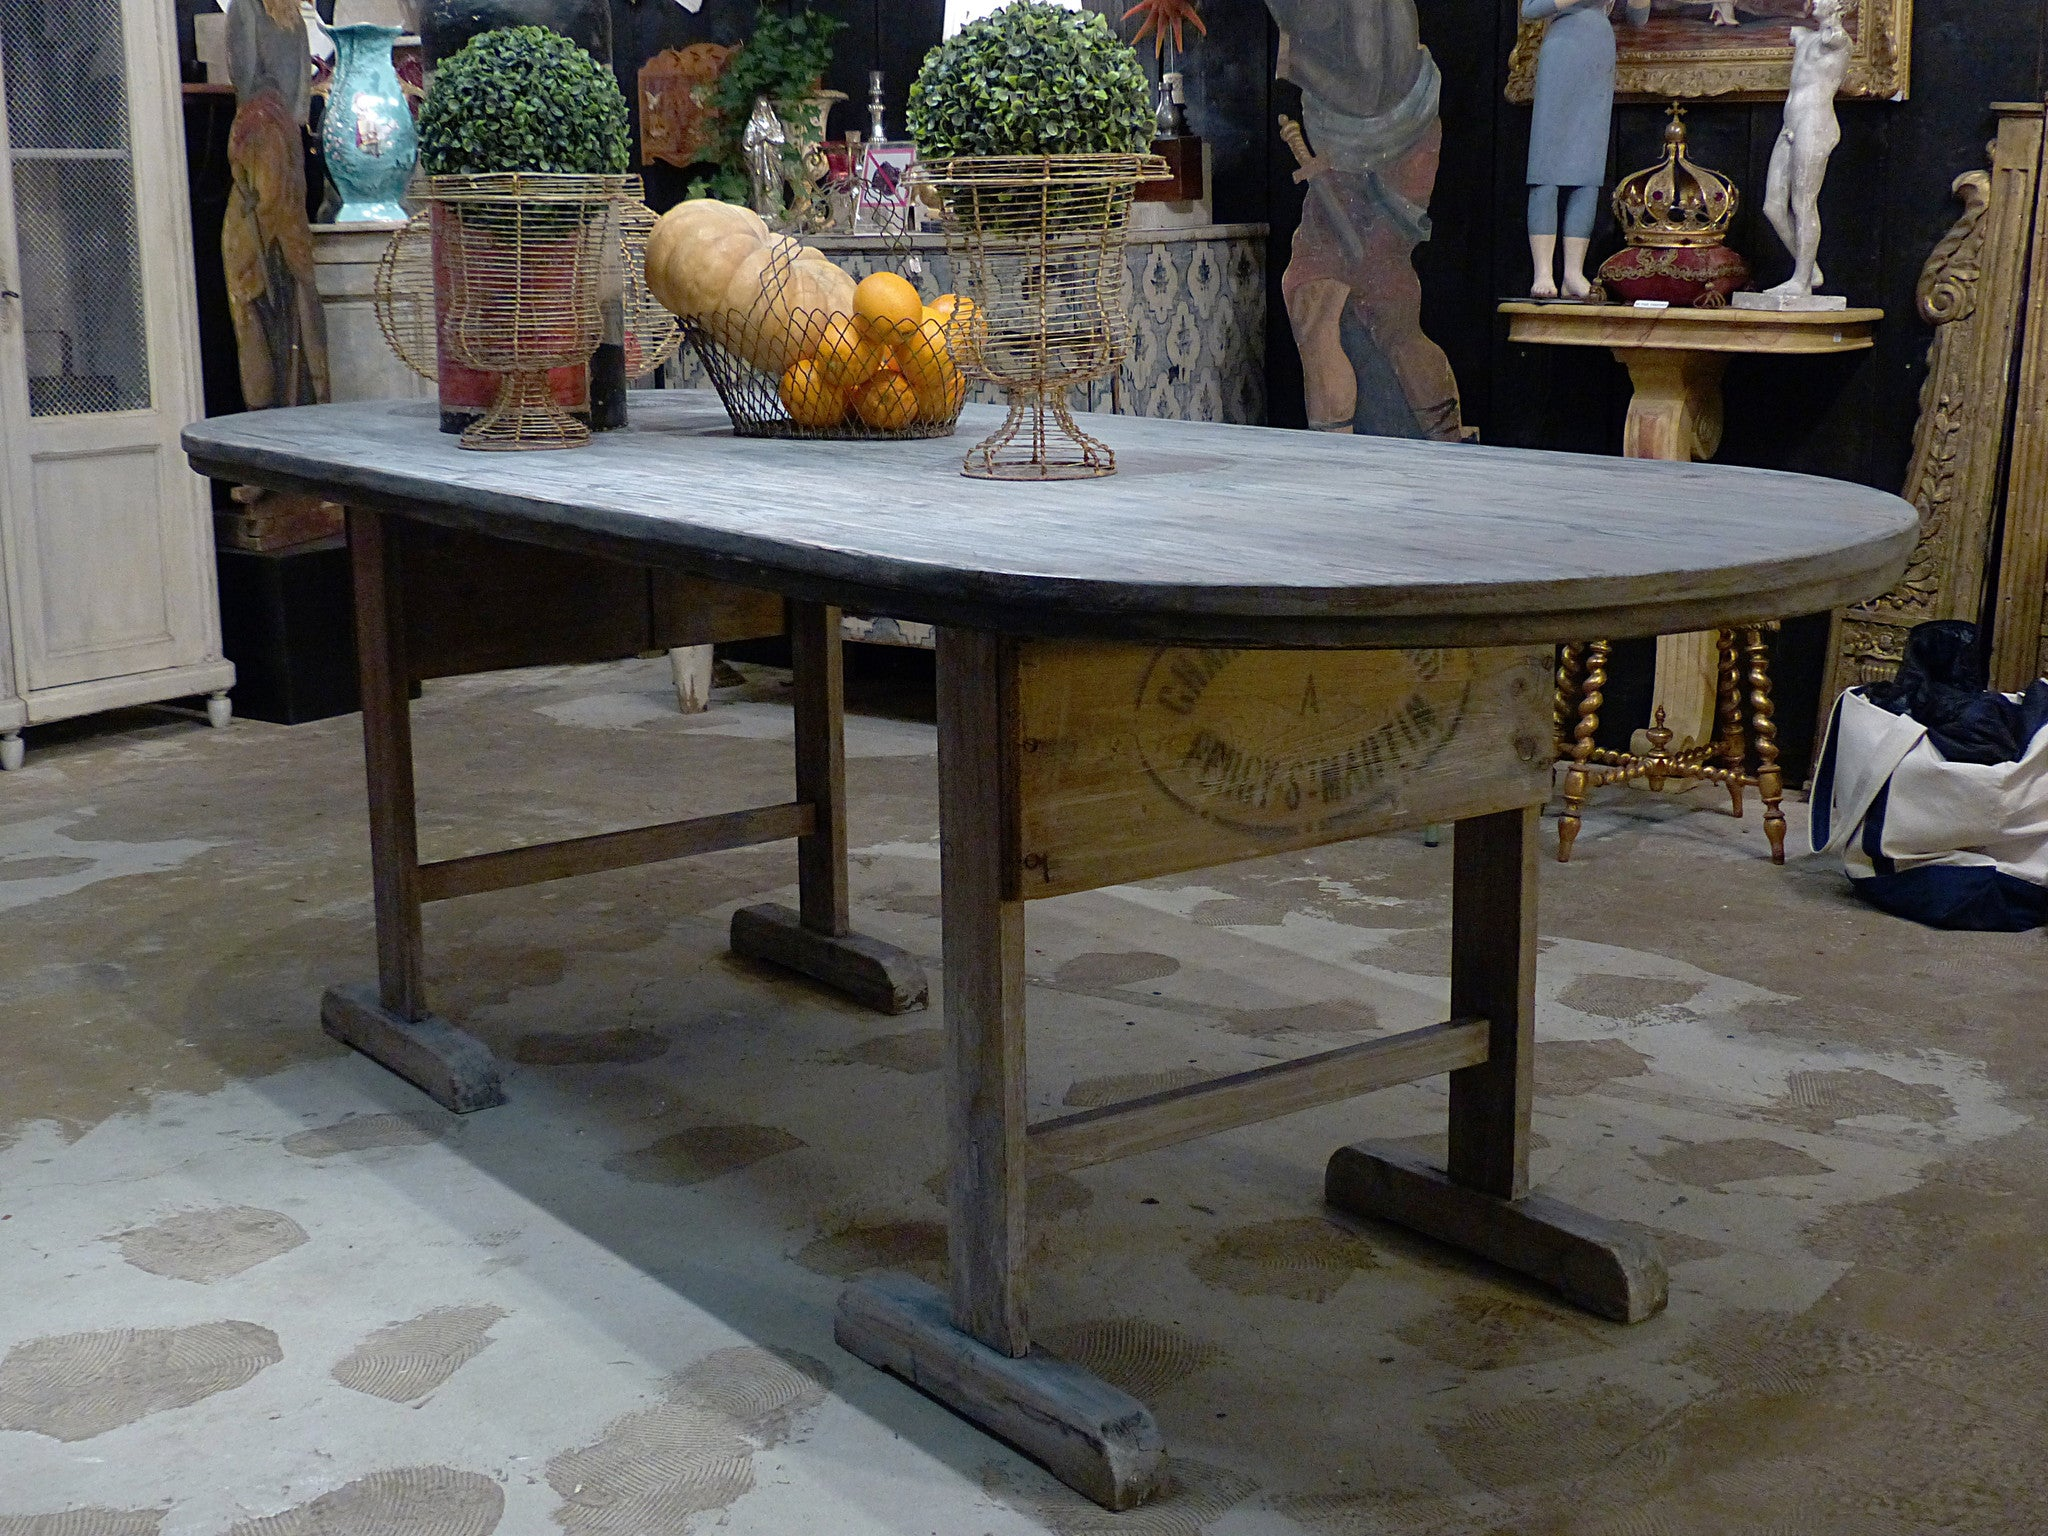 Large rustic farm table from Beaujolais